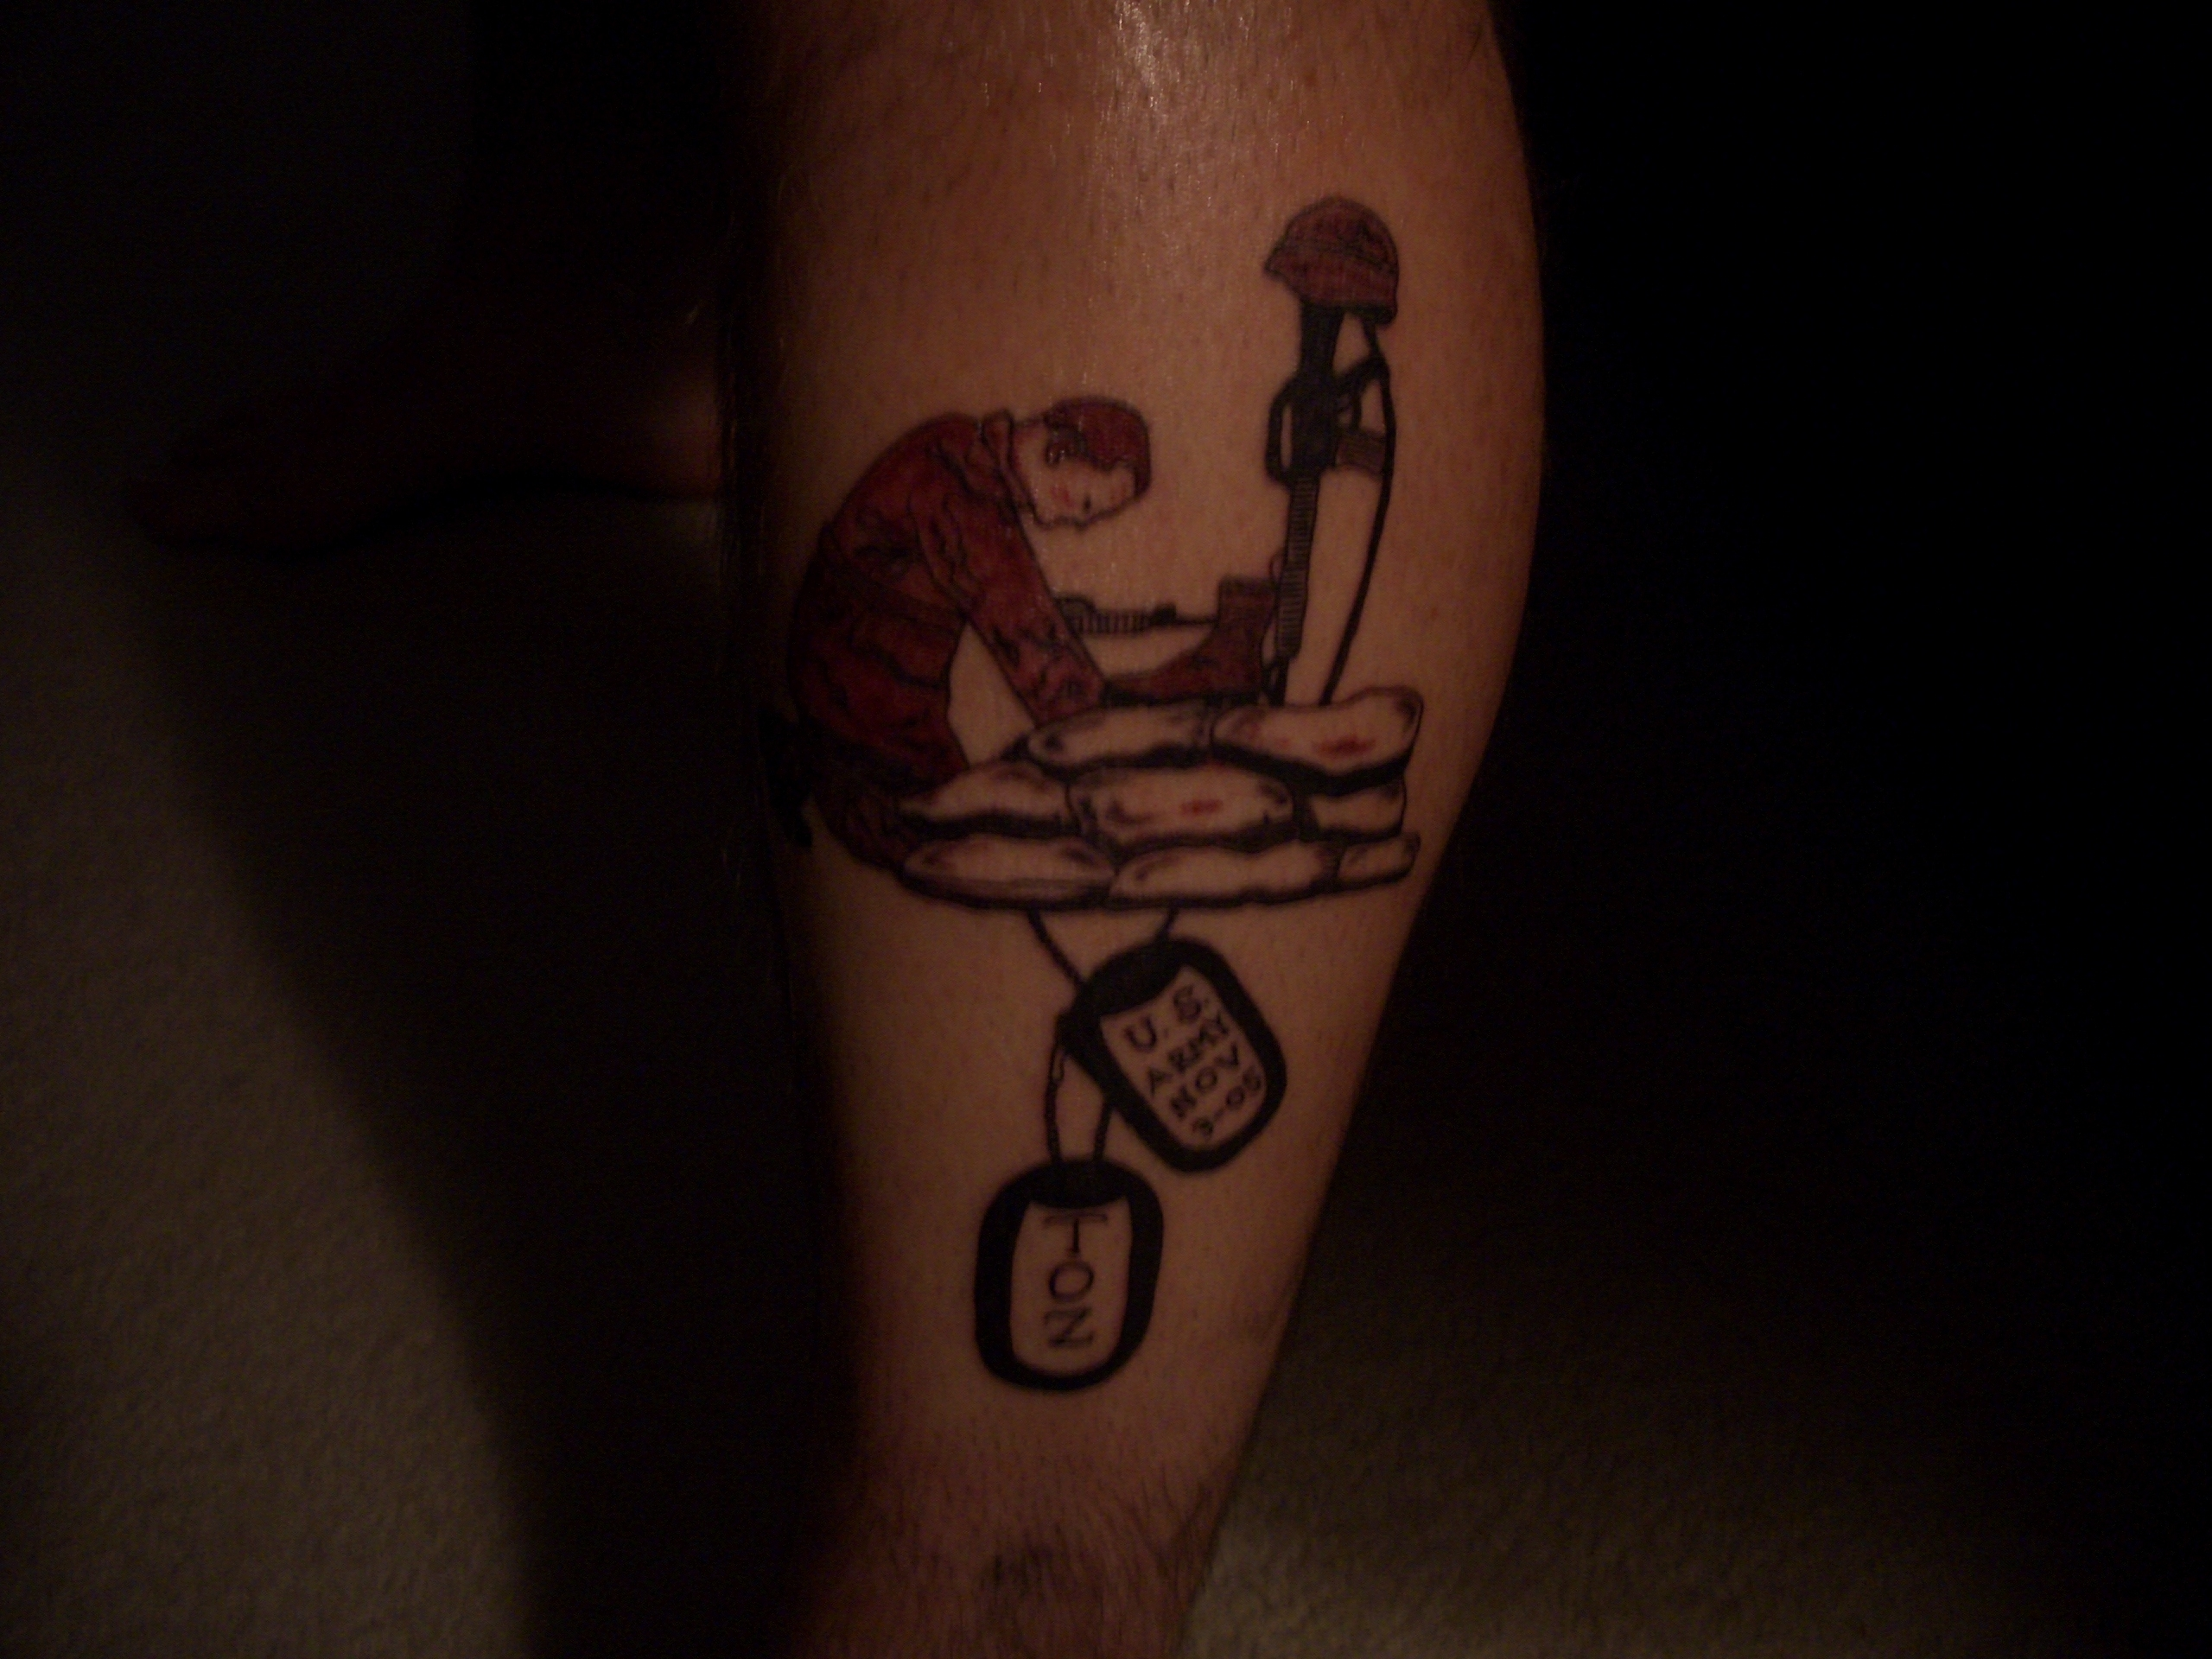 Ron's tattoo - Copy